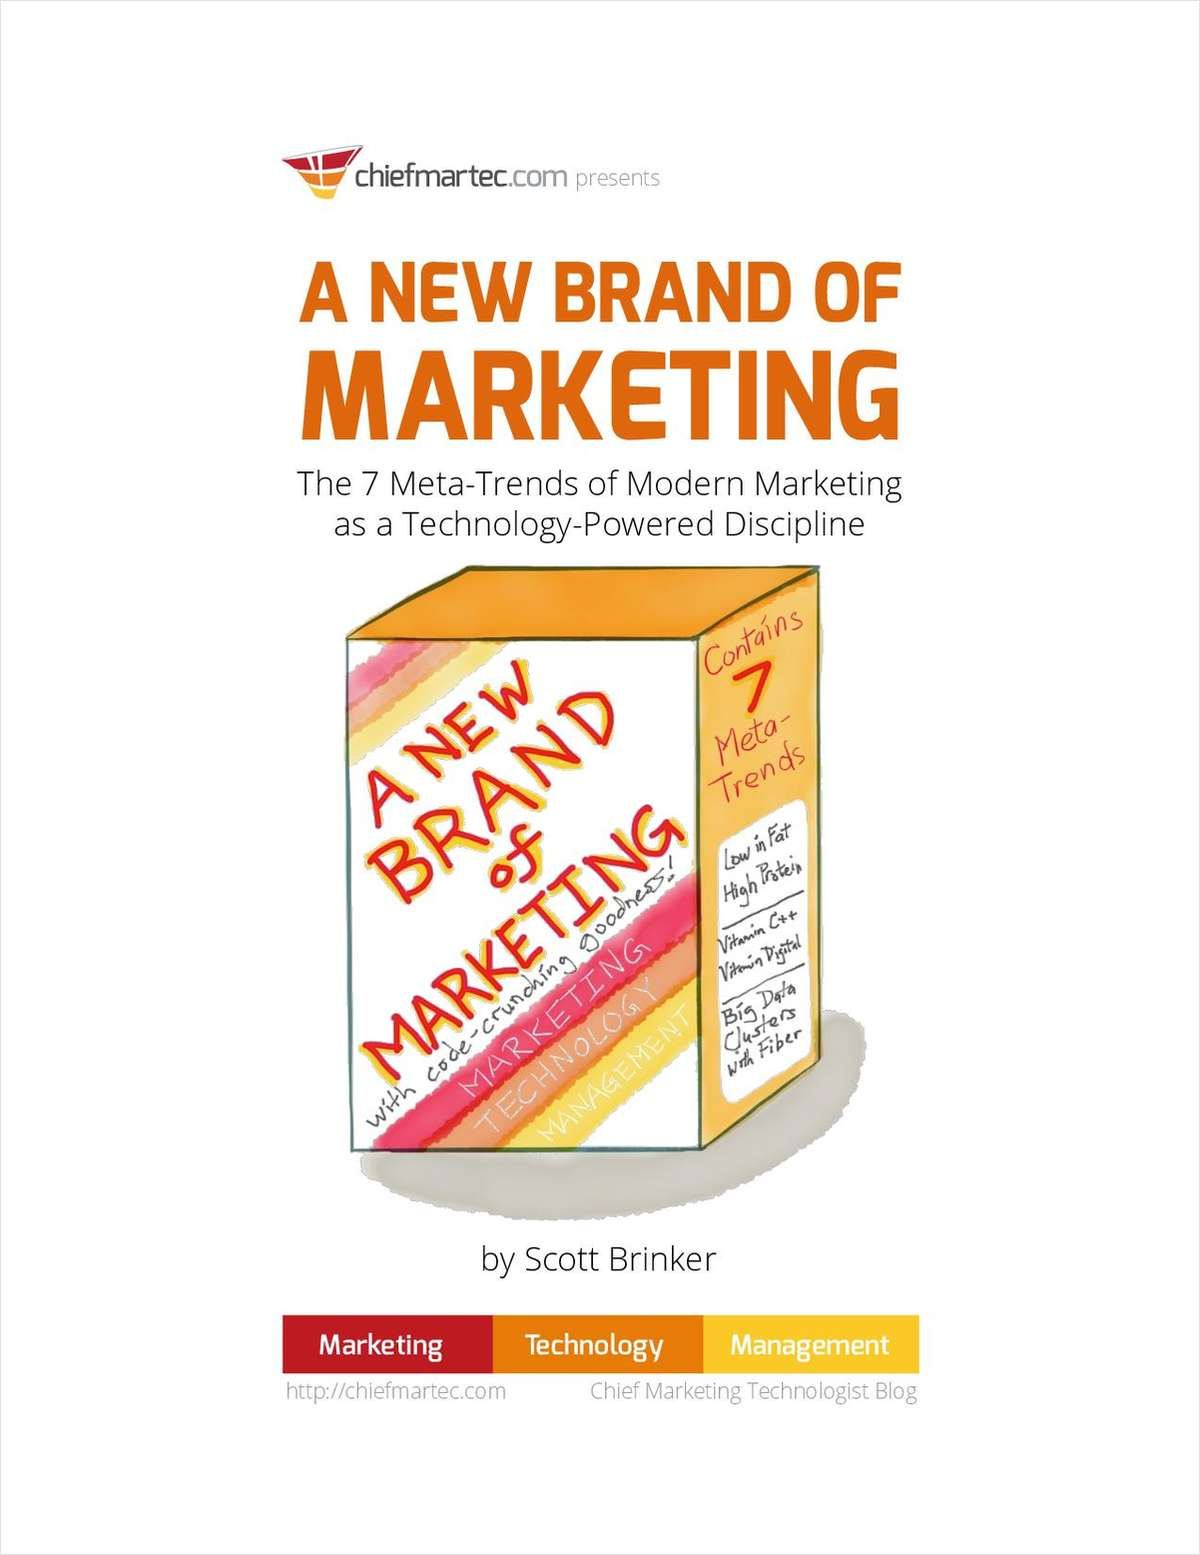 A New Brand of Marketing: The 7 Meta-Trends of Modern Marketing as a Technology-Powered Discipline